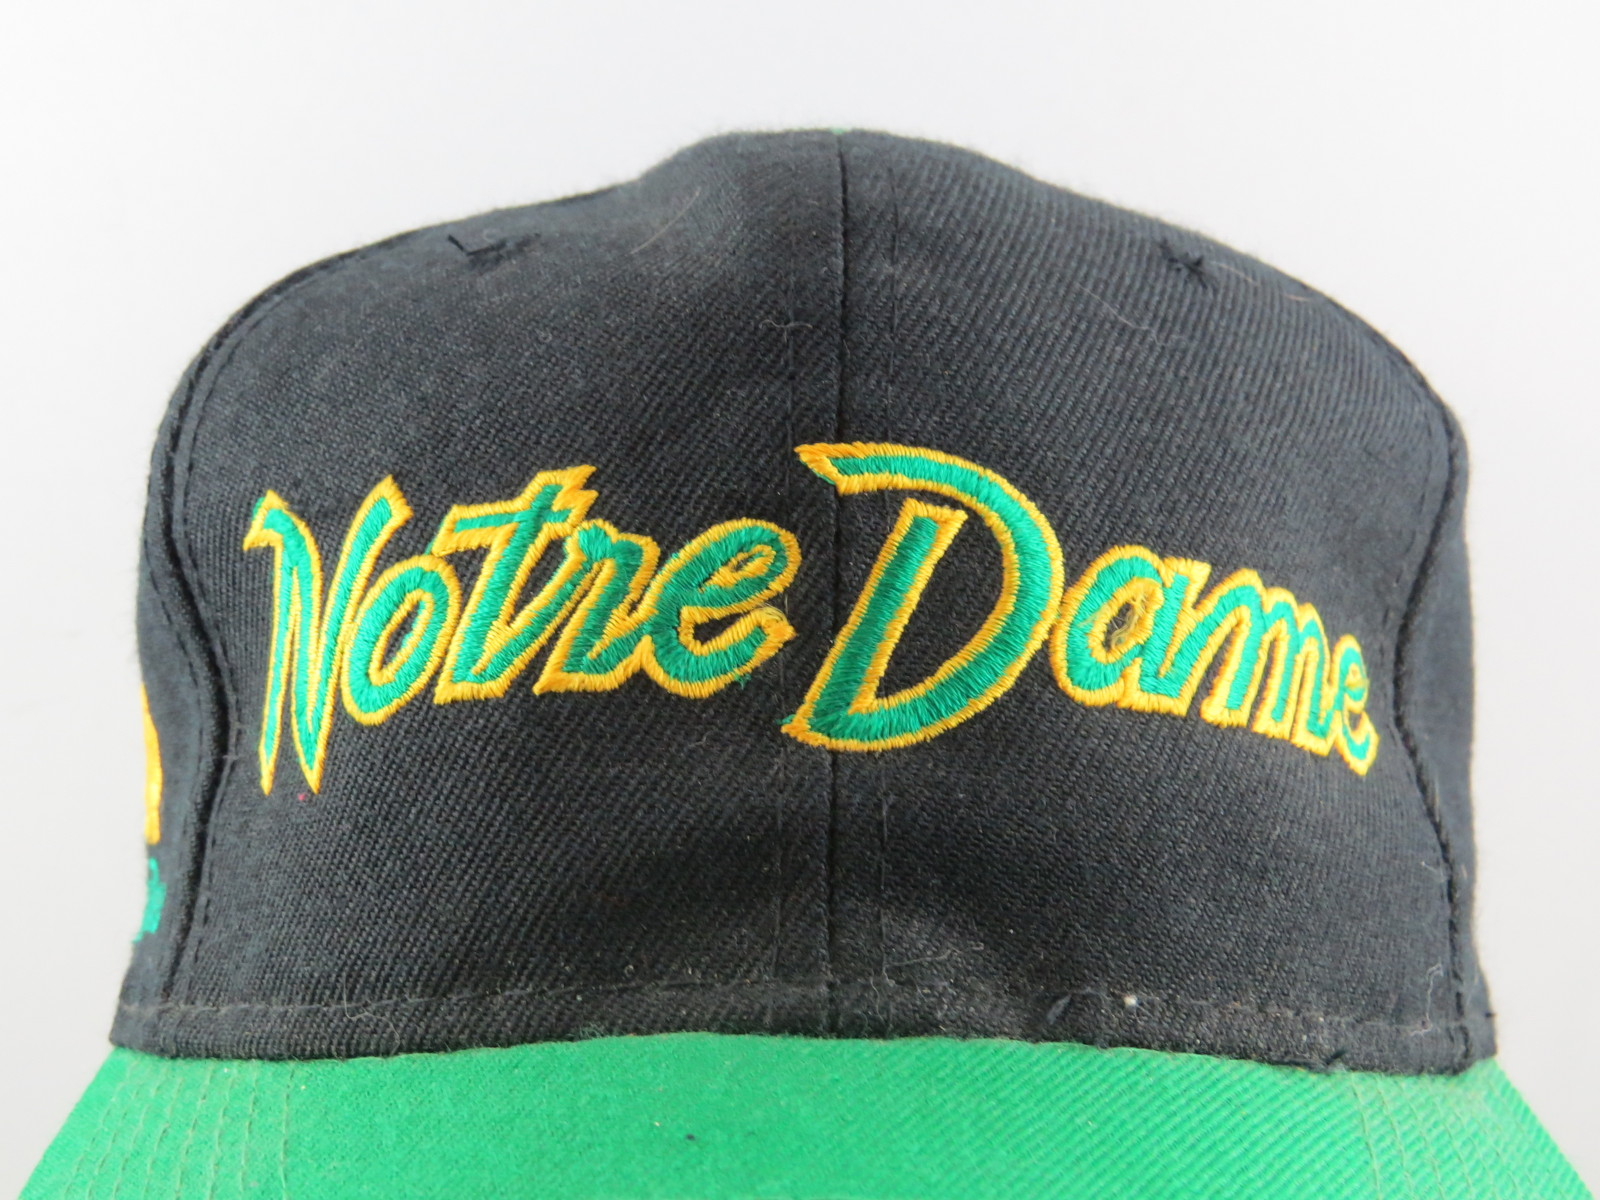 Notre Dam Fighting Irish Hat (VTG) - Wool Script Sports Specialties - Snapback